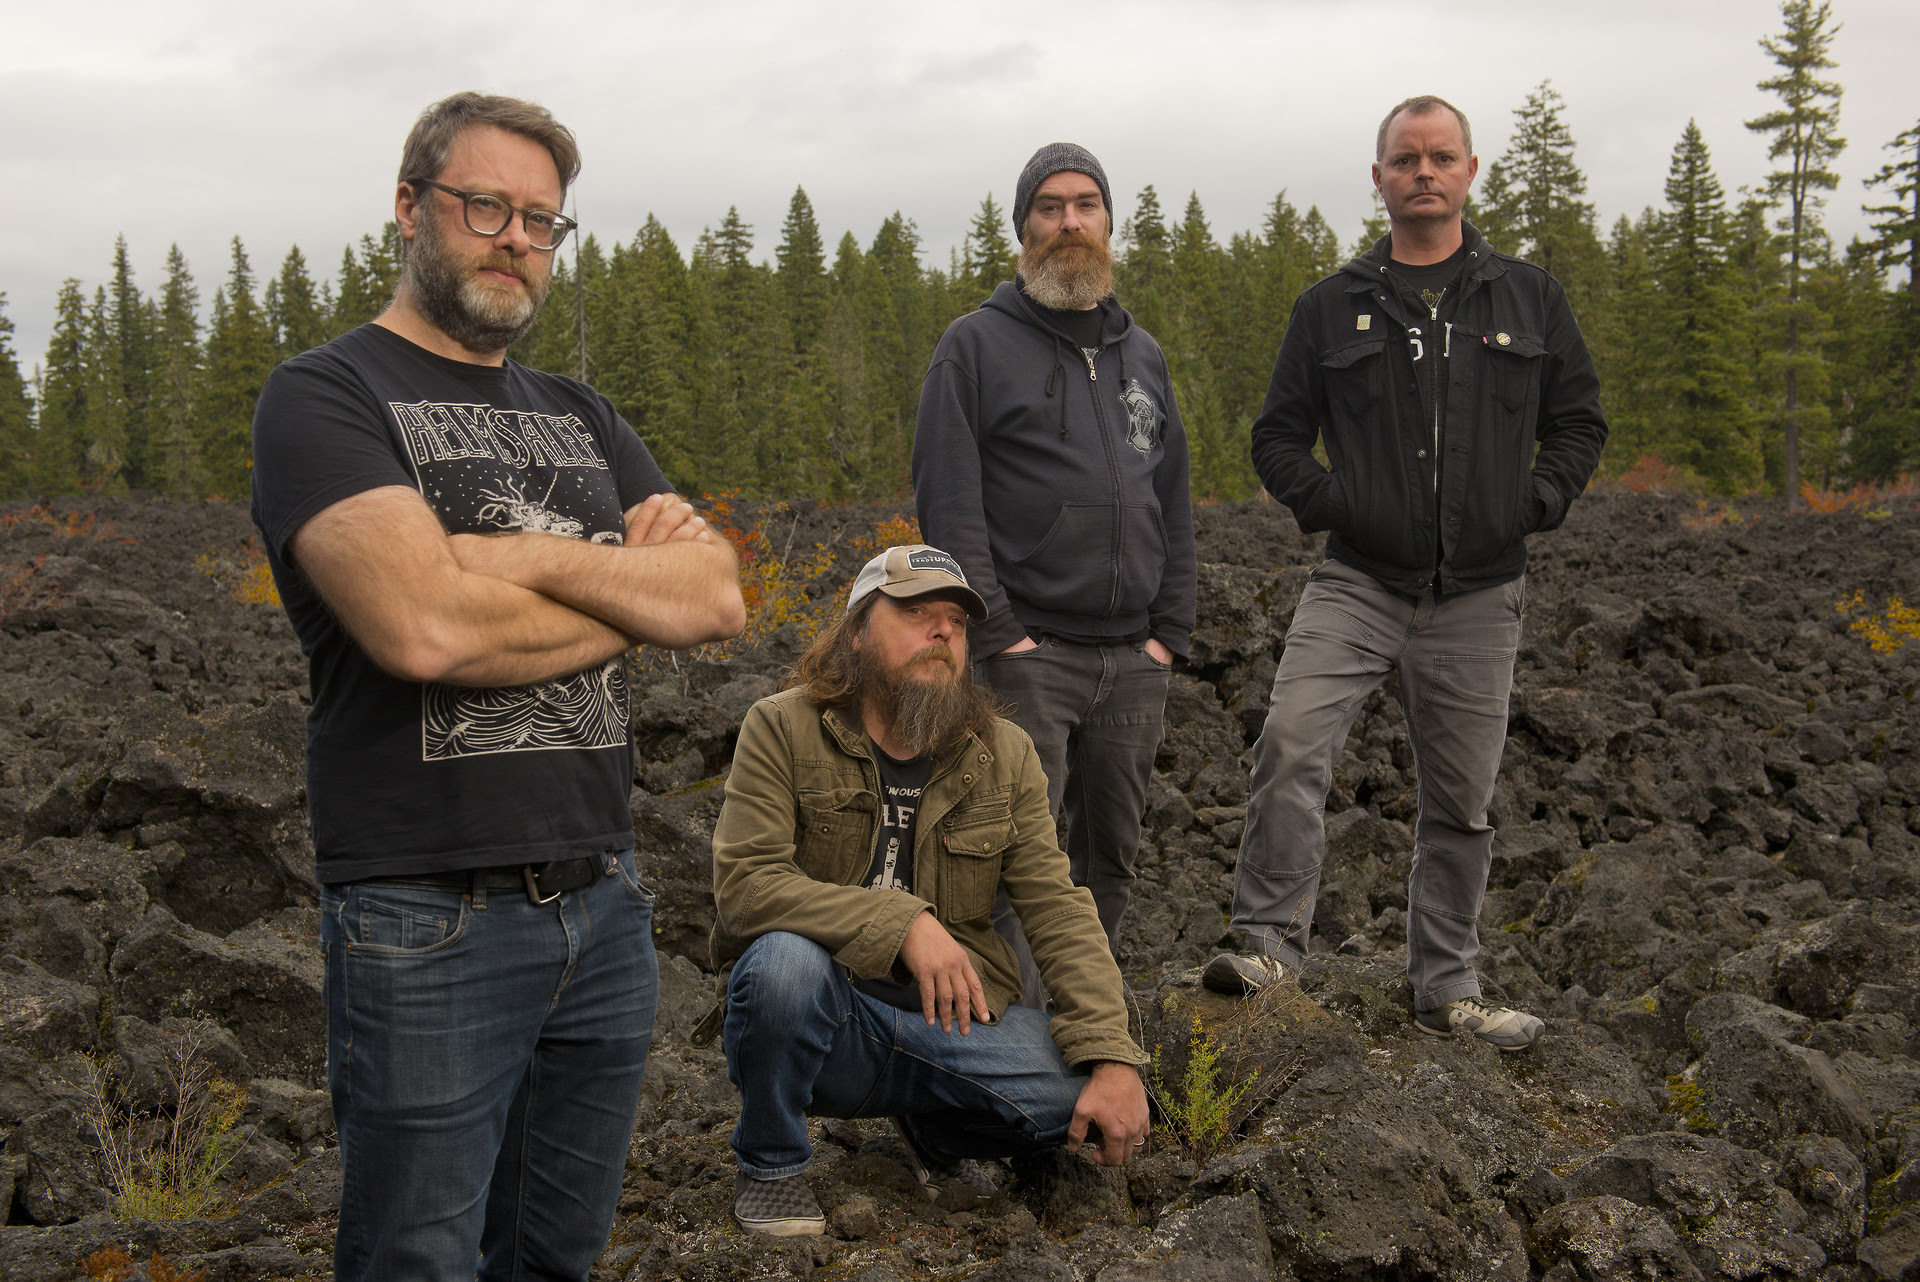 red fang (Photo by James Rexroad)